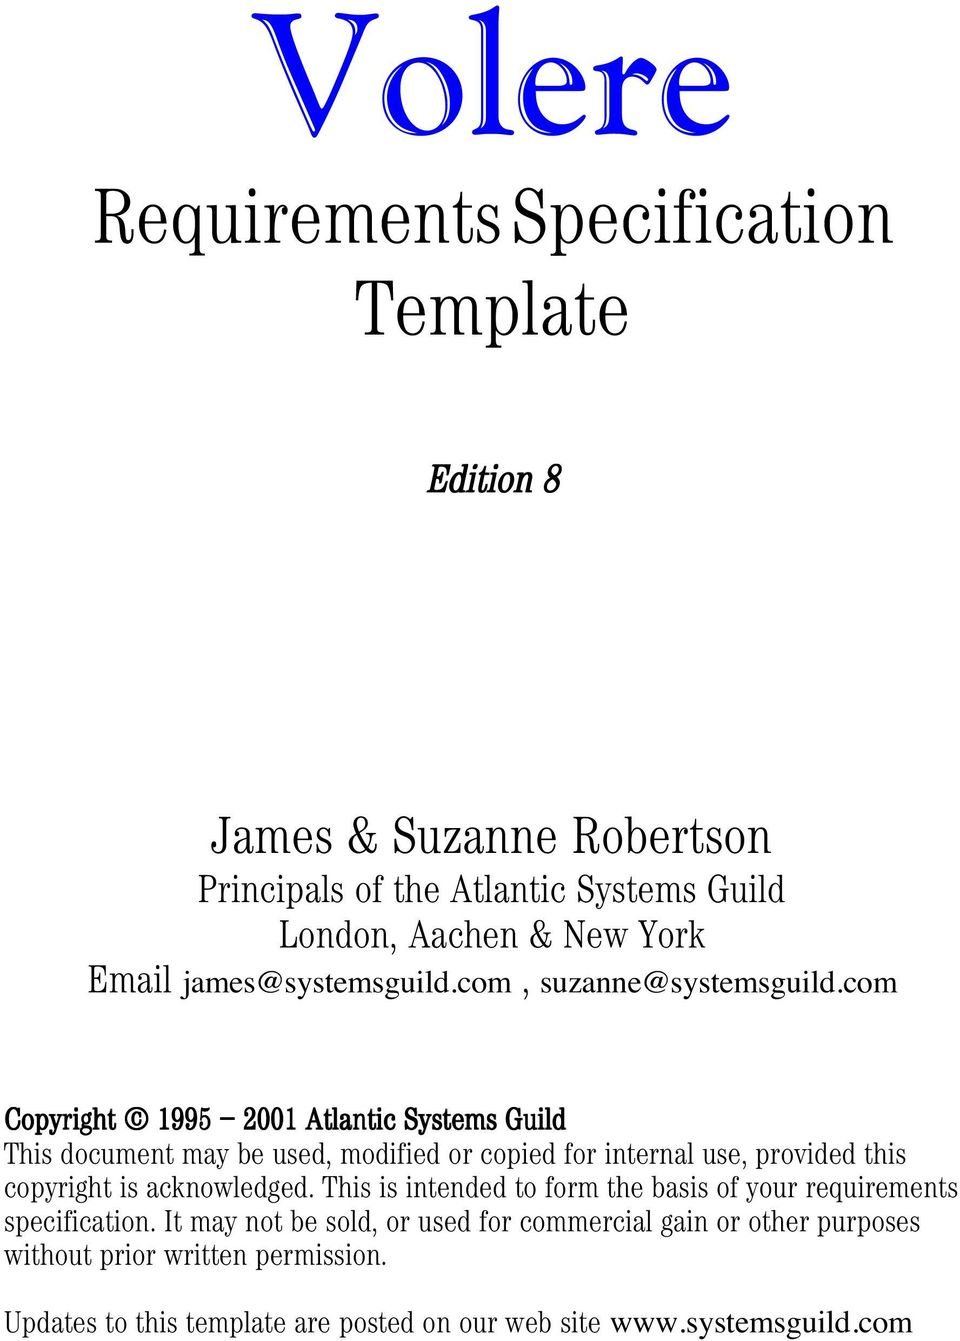 Volere requirements specification template james for Volere template free download